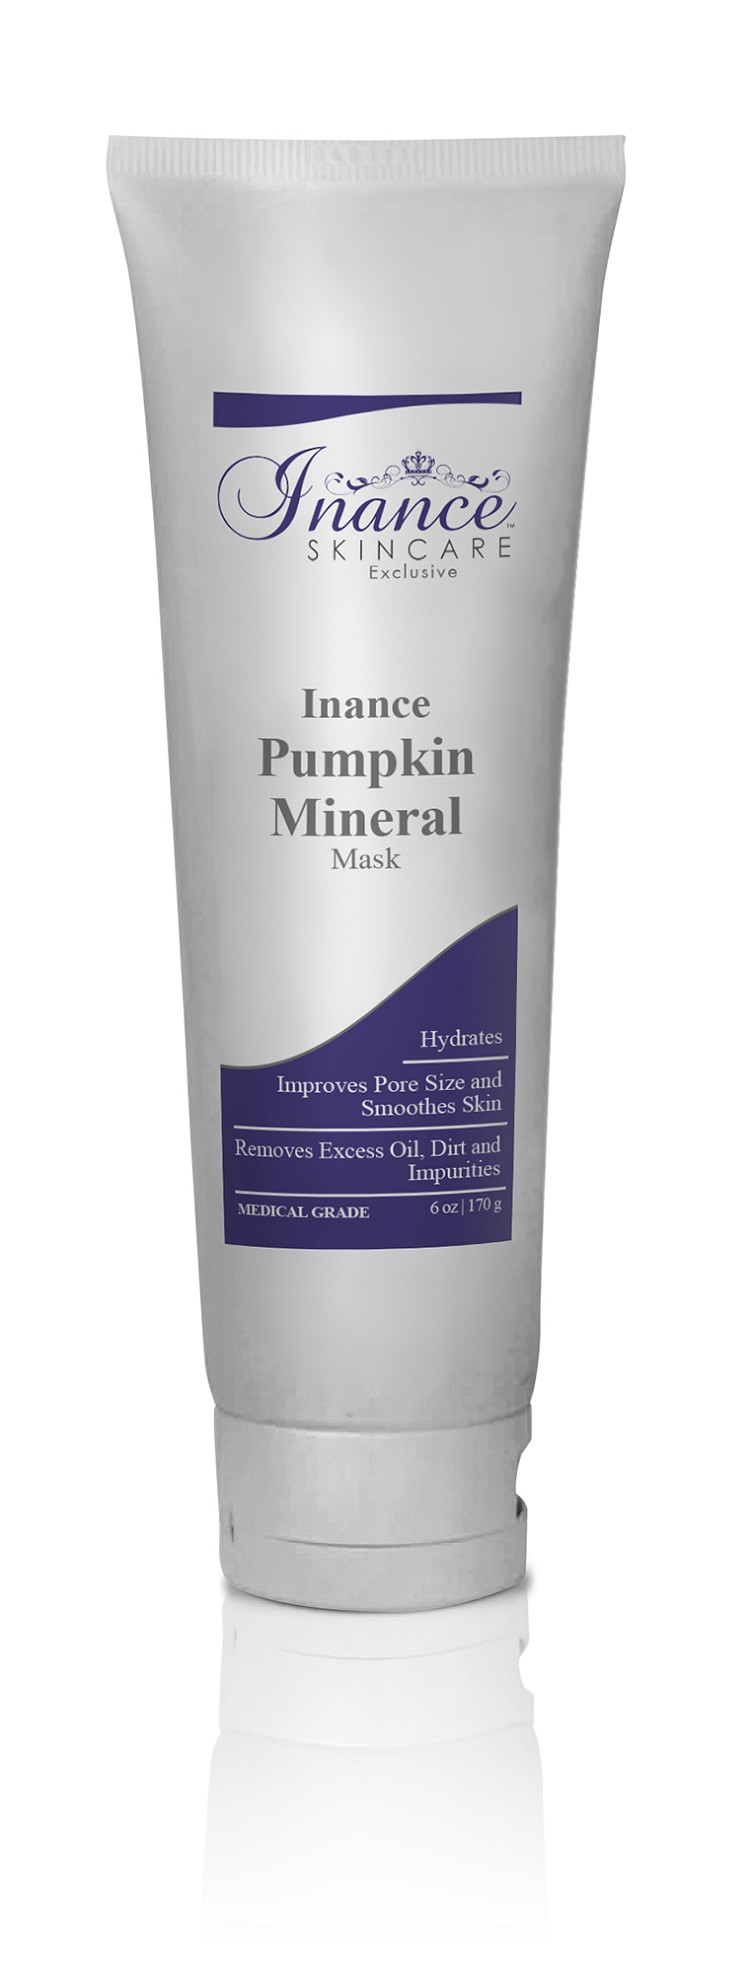 Inance Exclusive Pumkin Mineral Mask 6oz